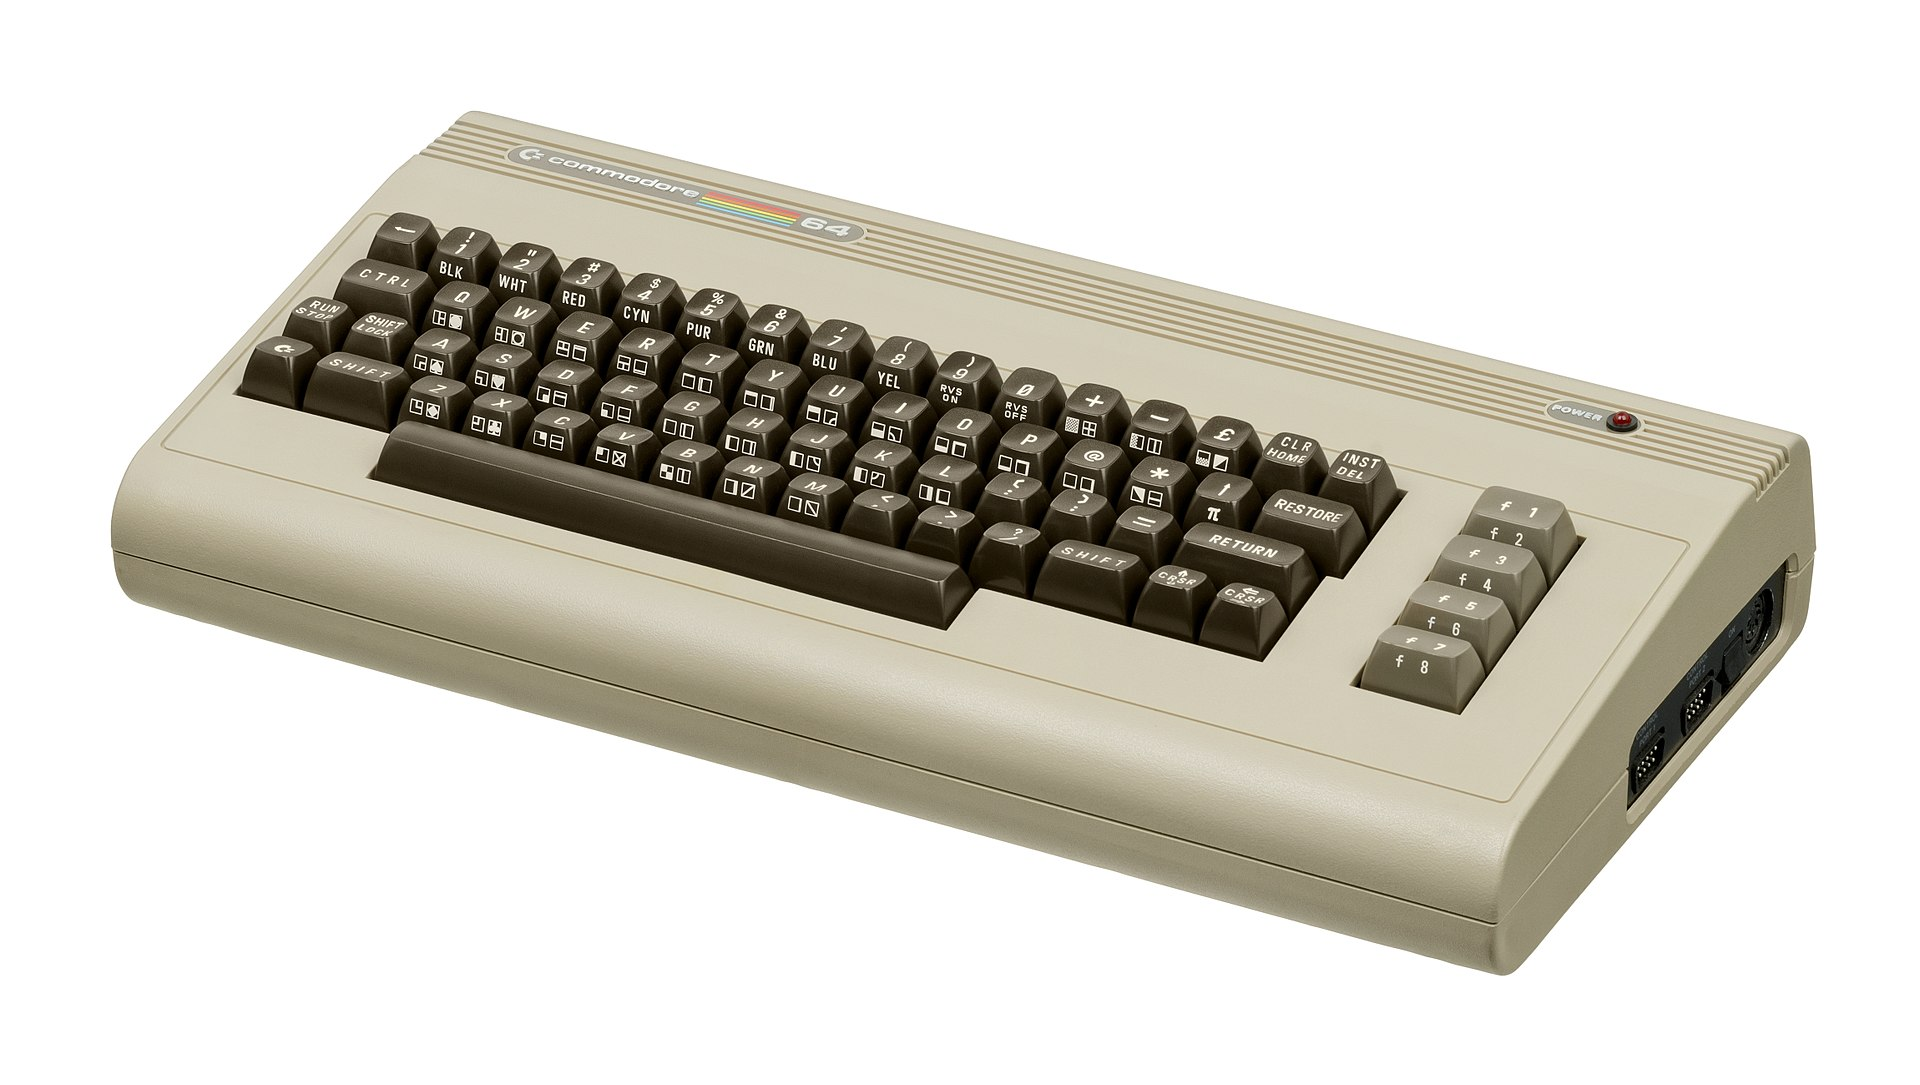 Ray got to play with lots of cool hardware over at his cousin. The C64 was one of those machines.